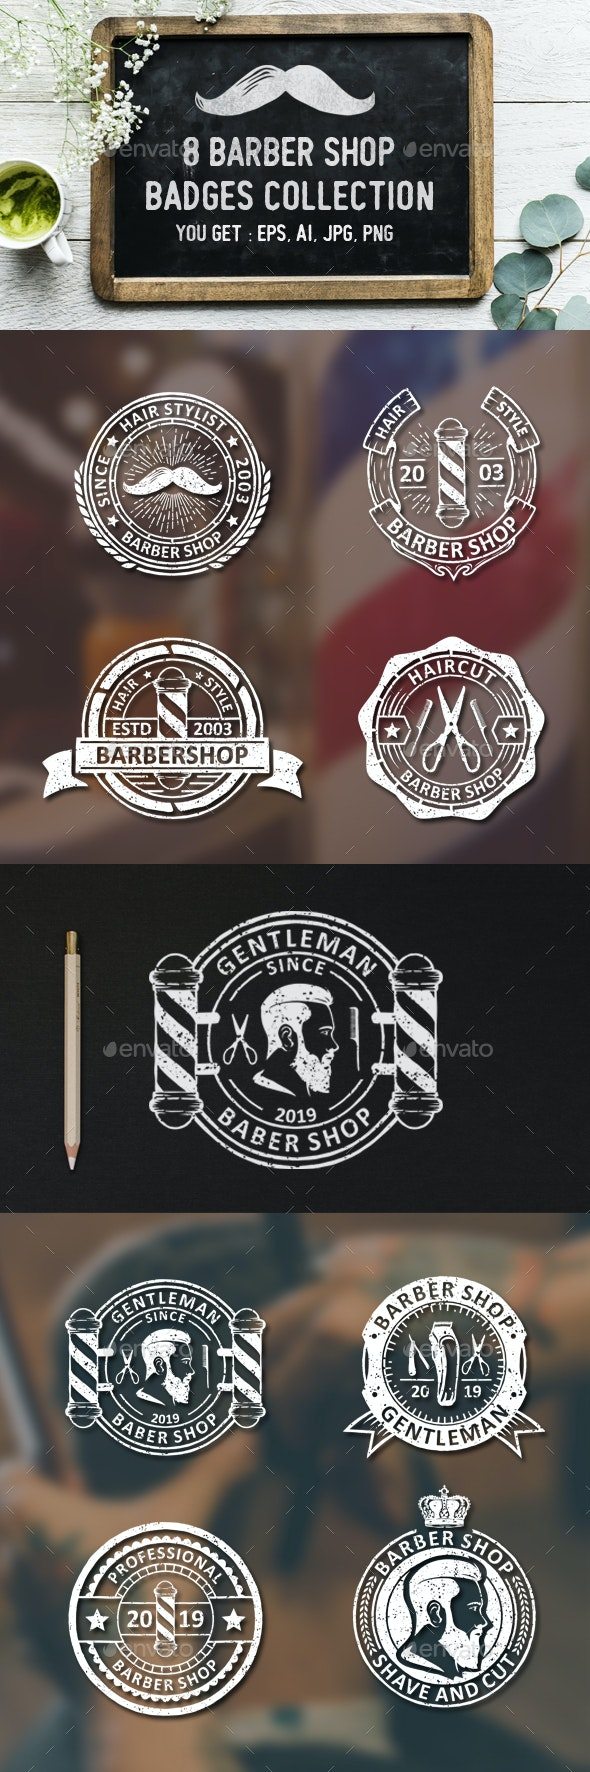 8 Barbershop Logos and Badges - Badges & Stickers Web Elements